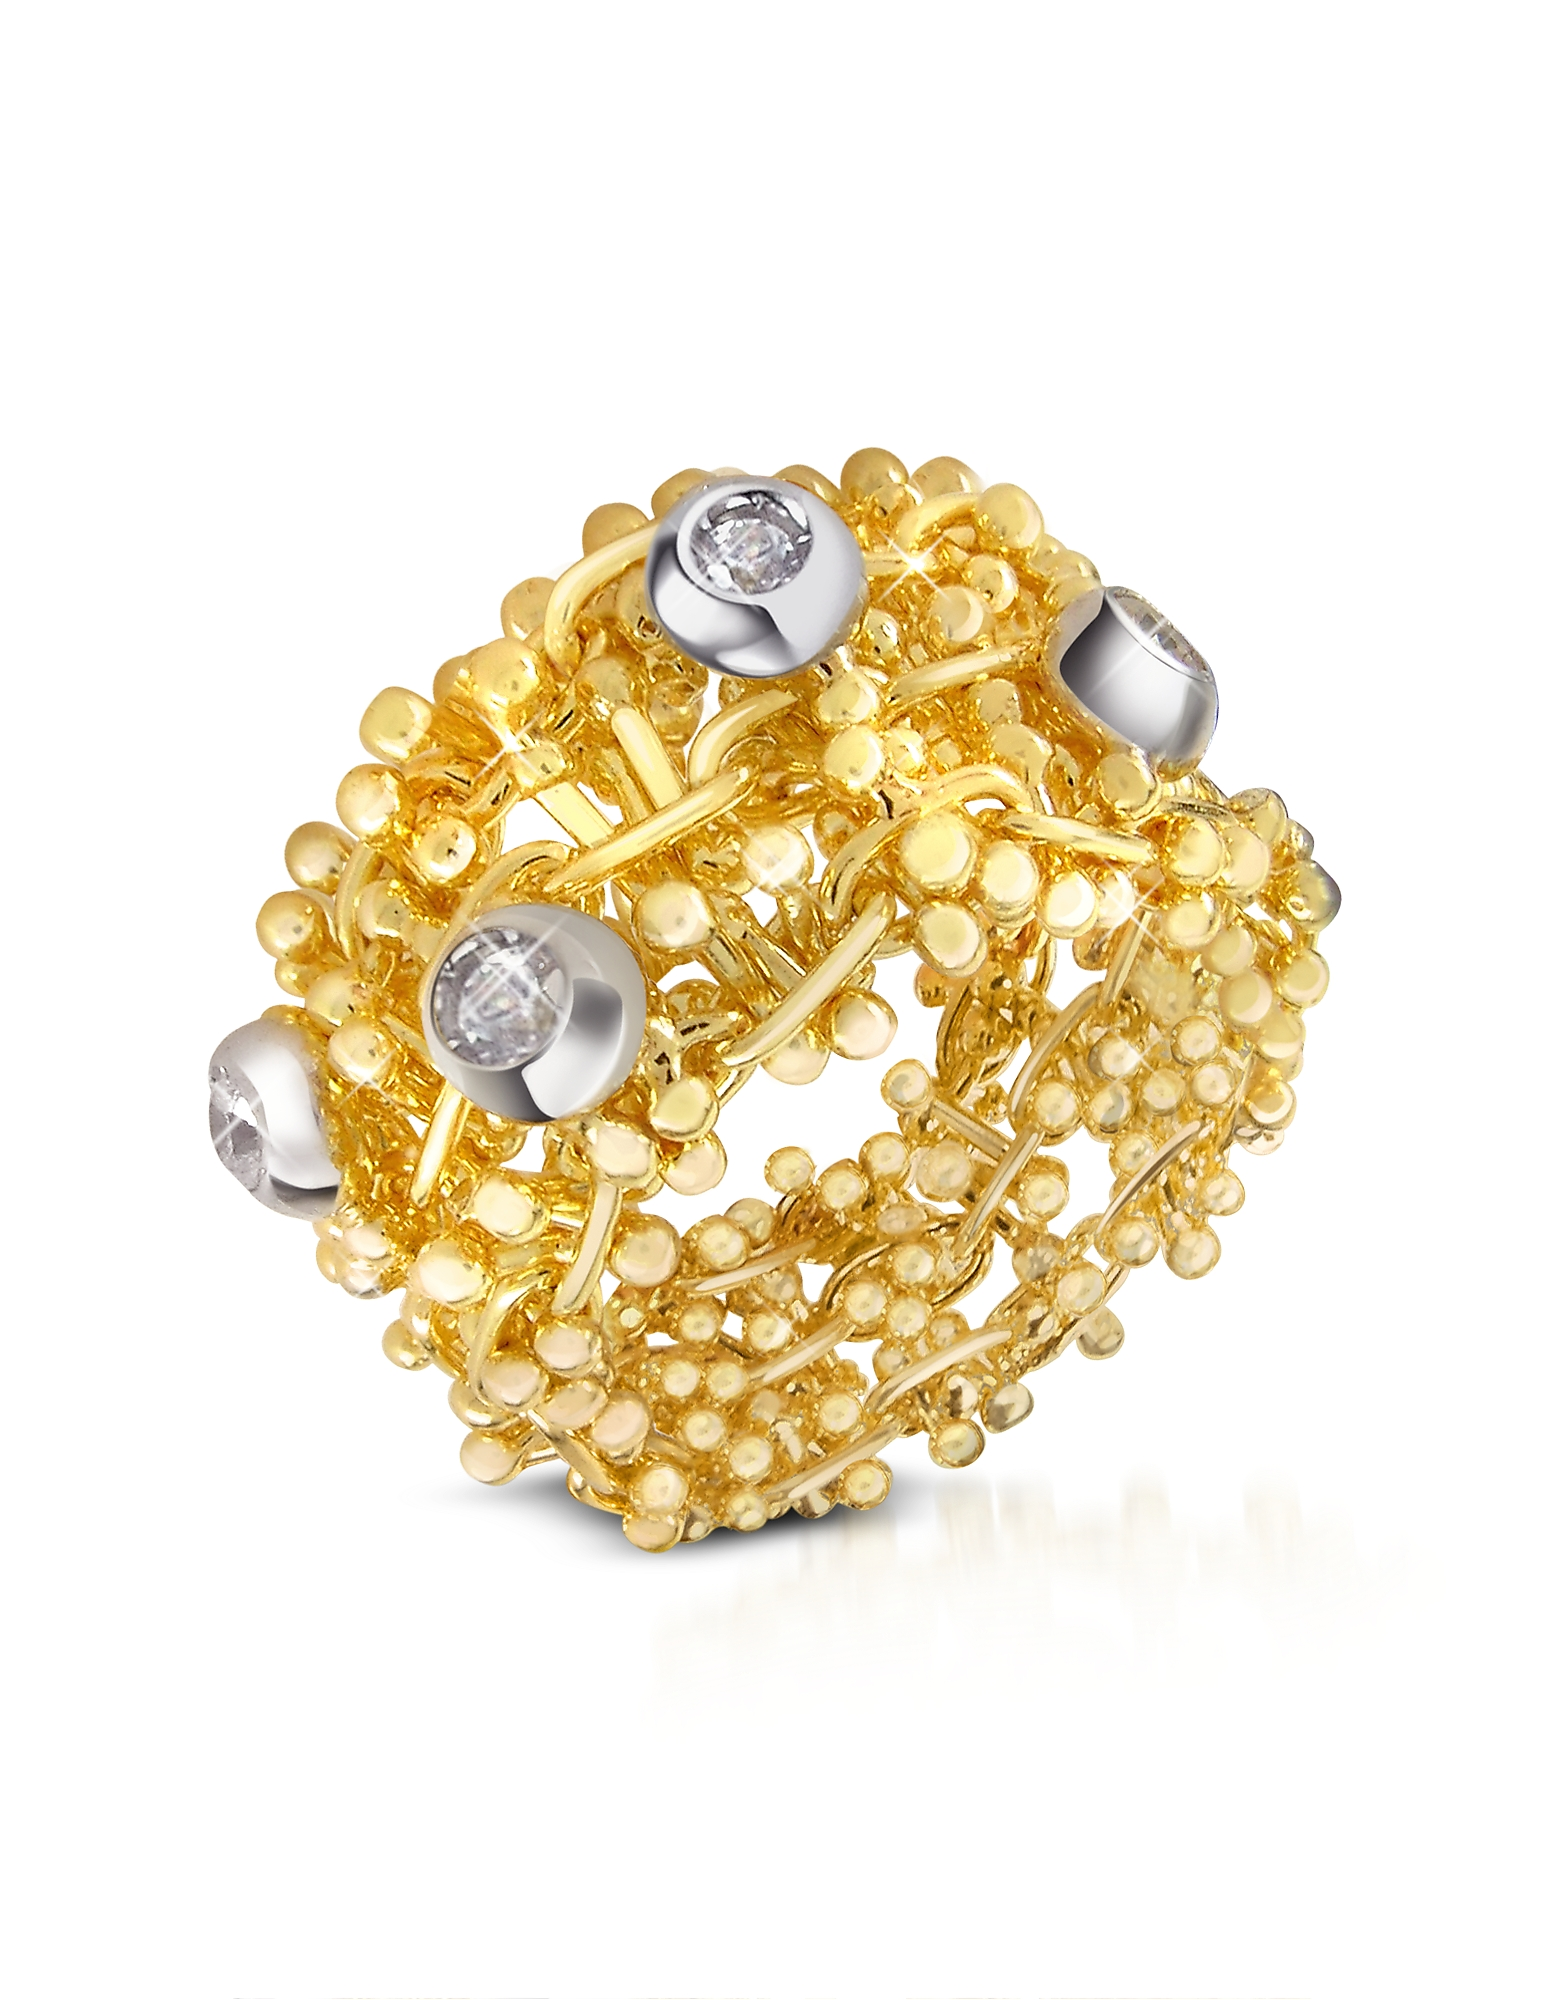 Orlando Orlandini Rings, Diamond 18K Yellow Gold Band Ring